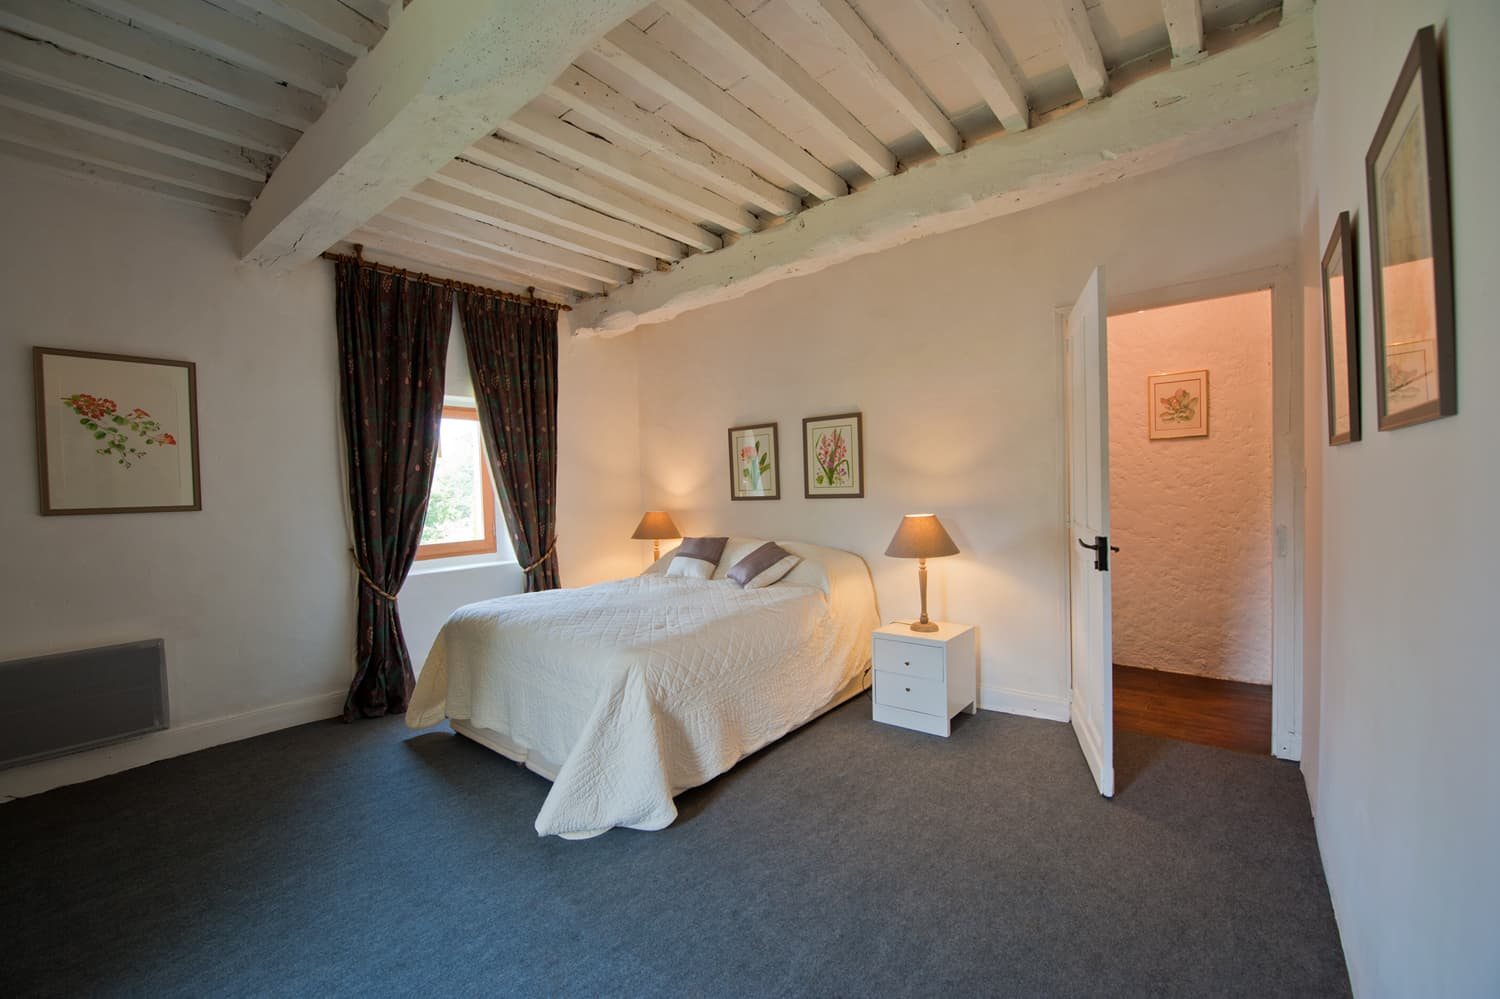 Bedroom in South West France rental accommodation